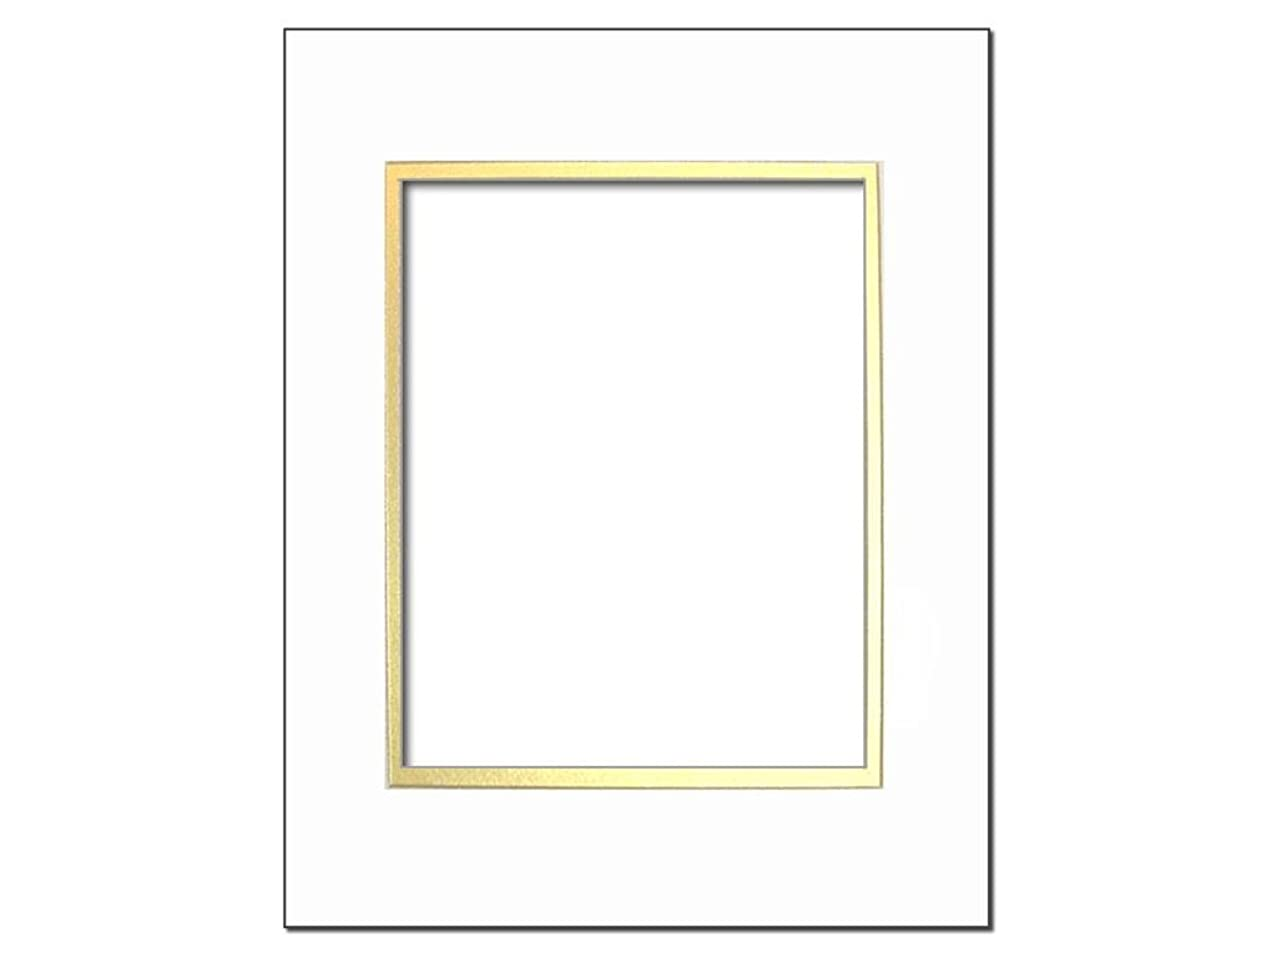 PA Framing, Double Mat, 5 x 7 Inches Frame for 3.5 x 5 Inches Photo Art Size - Cream Core/White Upper and Gold Inner Mat